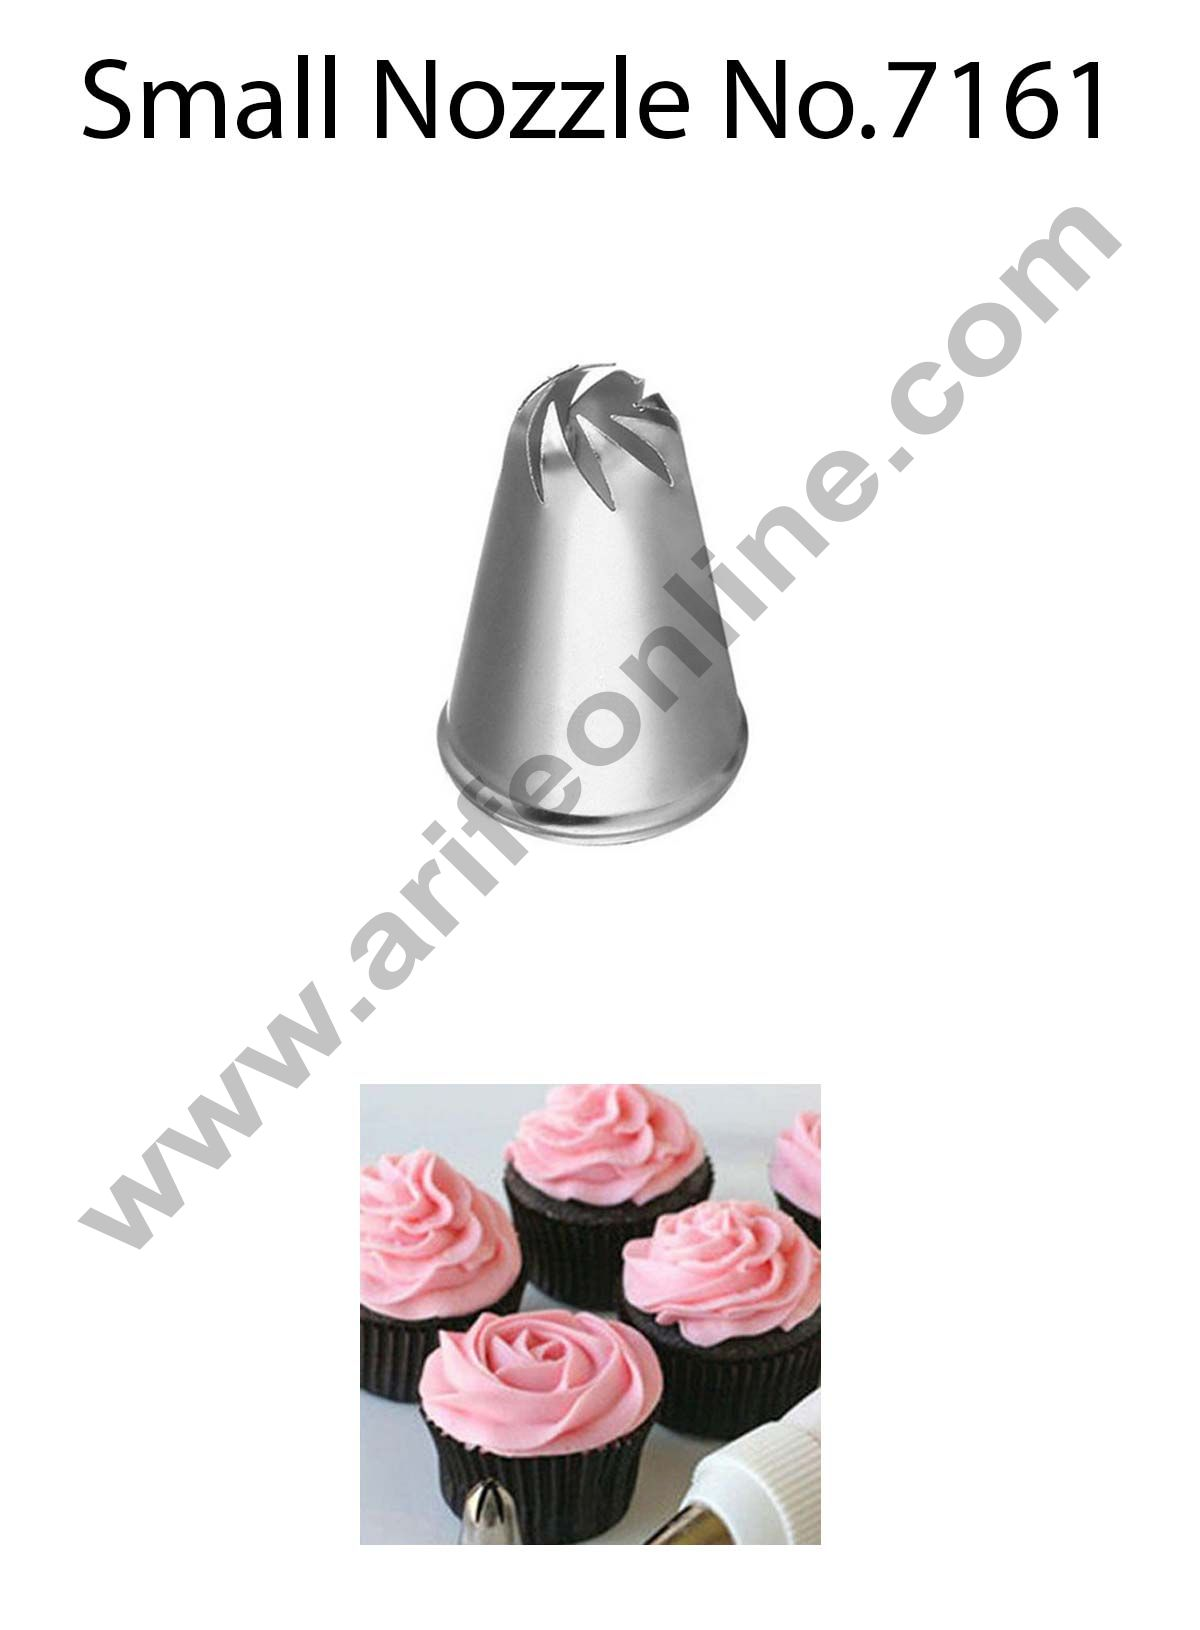 Cake Decor Small Nozzle - No. 7161 Drop Flower Piping Nozzle